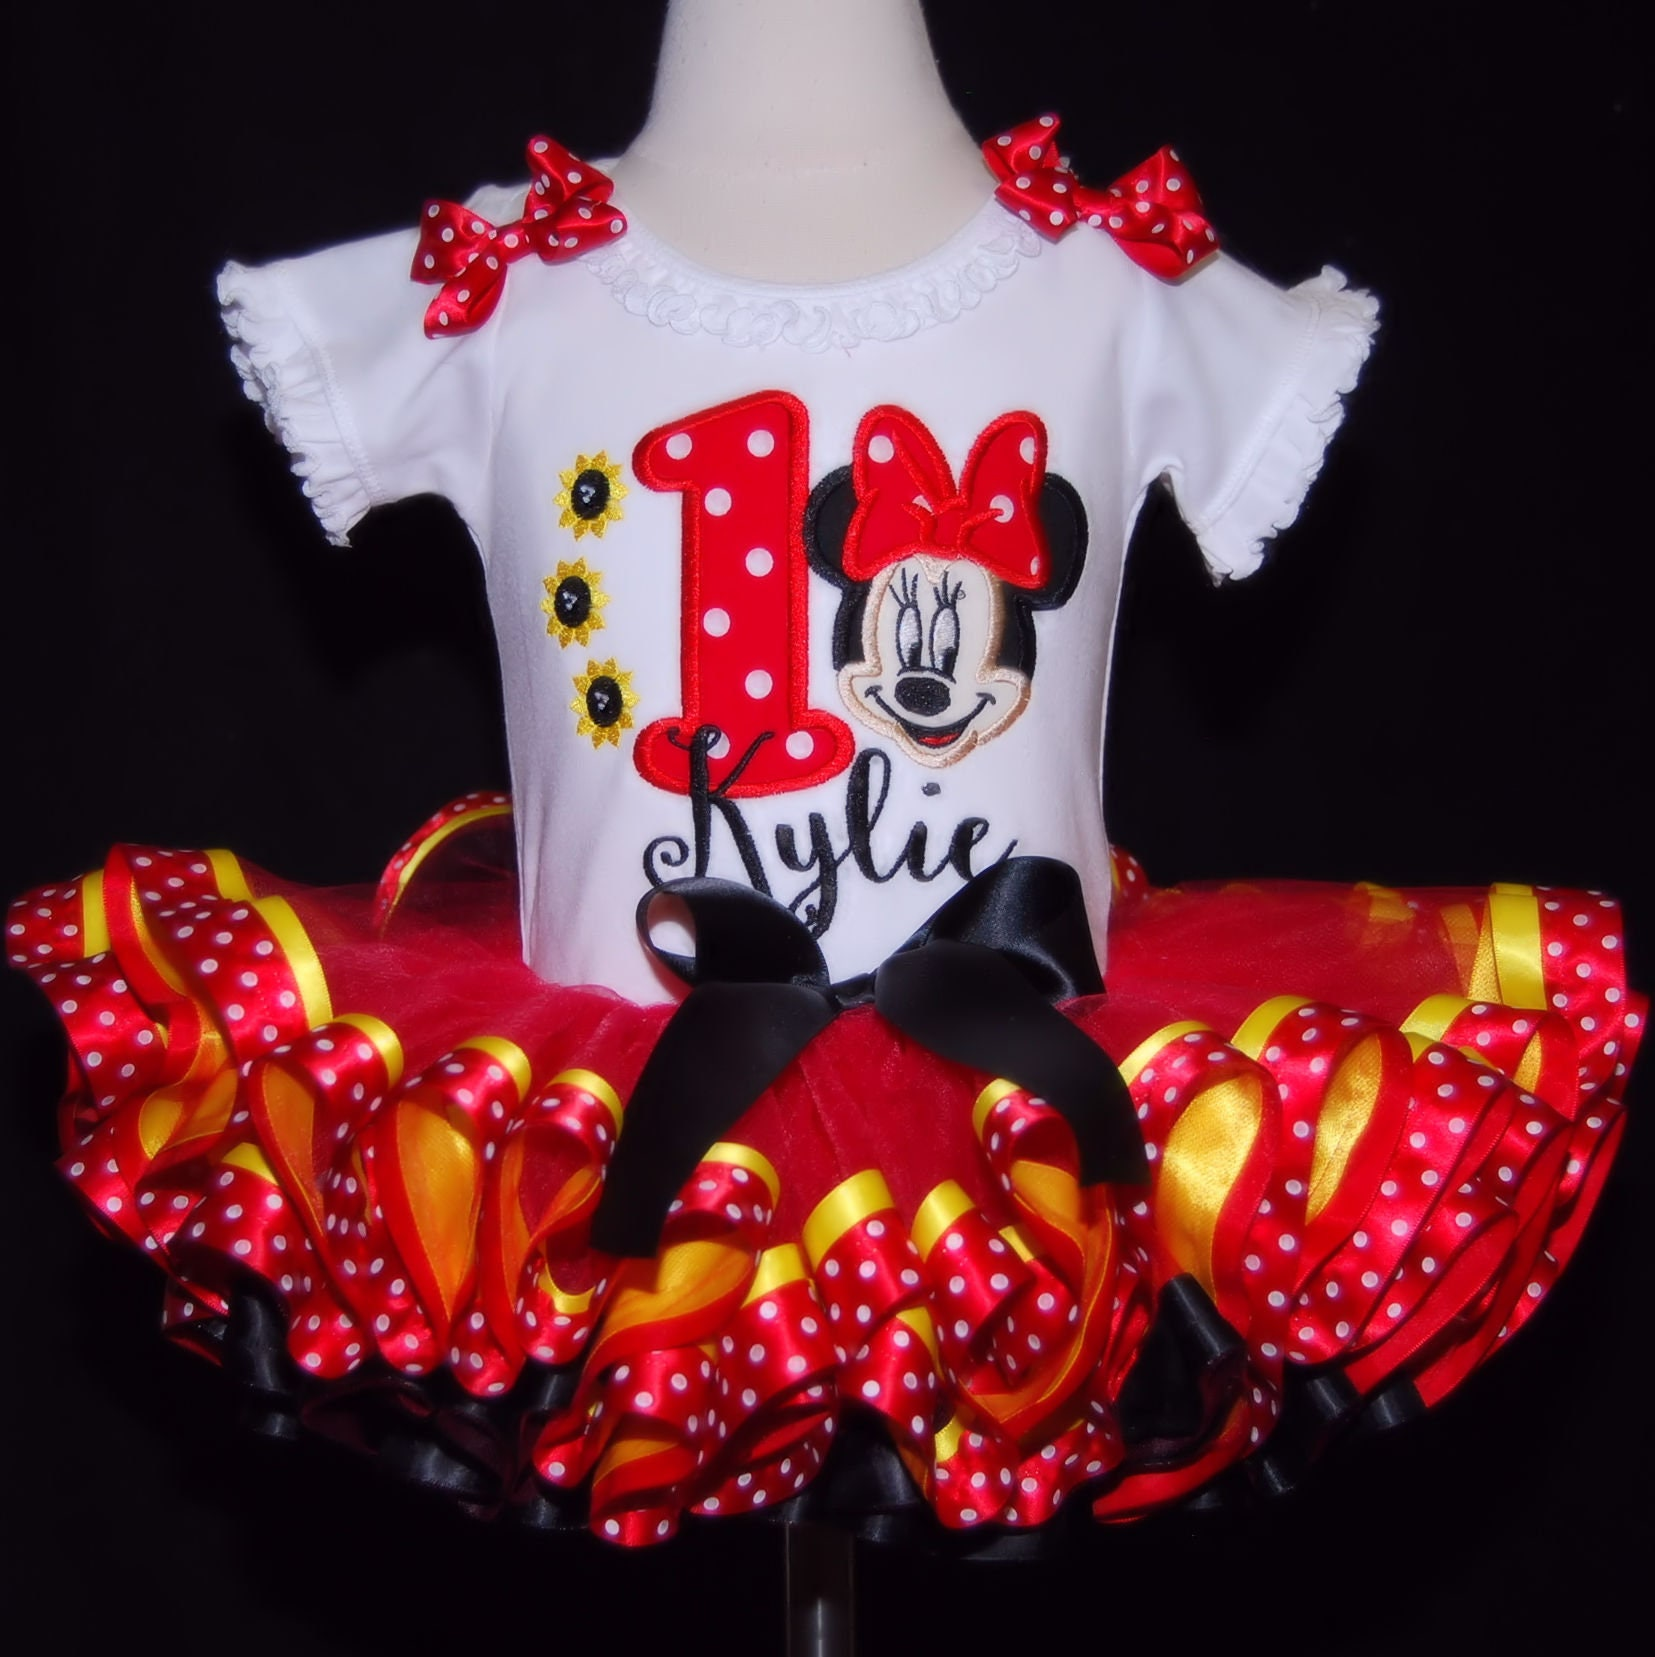 minnie mouse birthday outfit 1st birthday girl outfit first birthday tutu minnie mouse tutu minnie mouse party 1st birthday tutu dress tutu